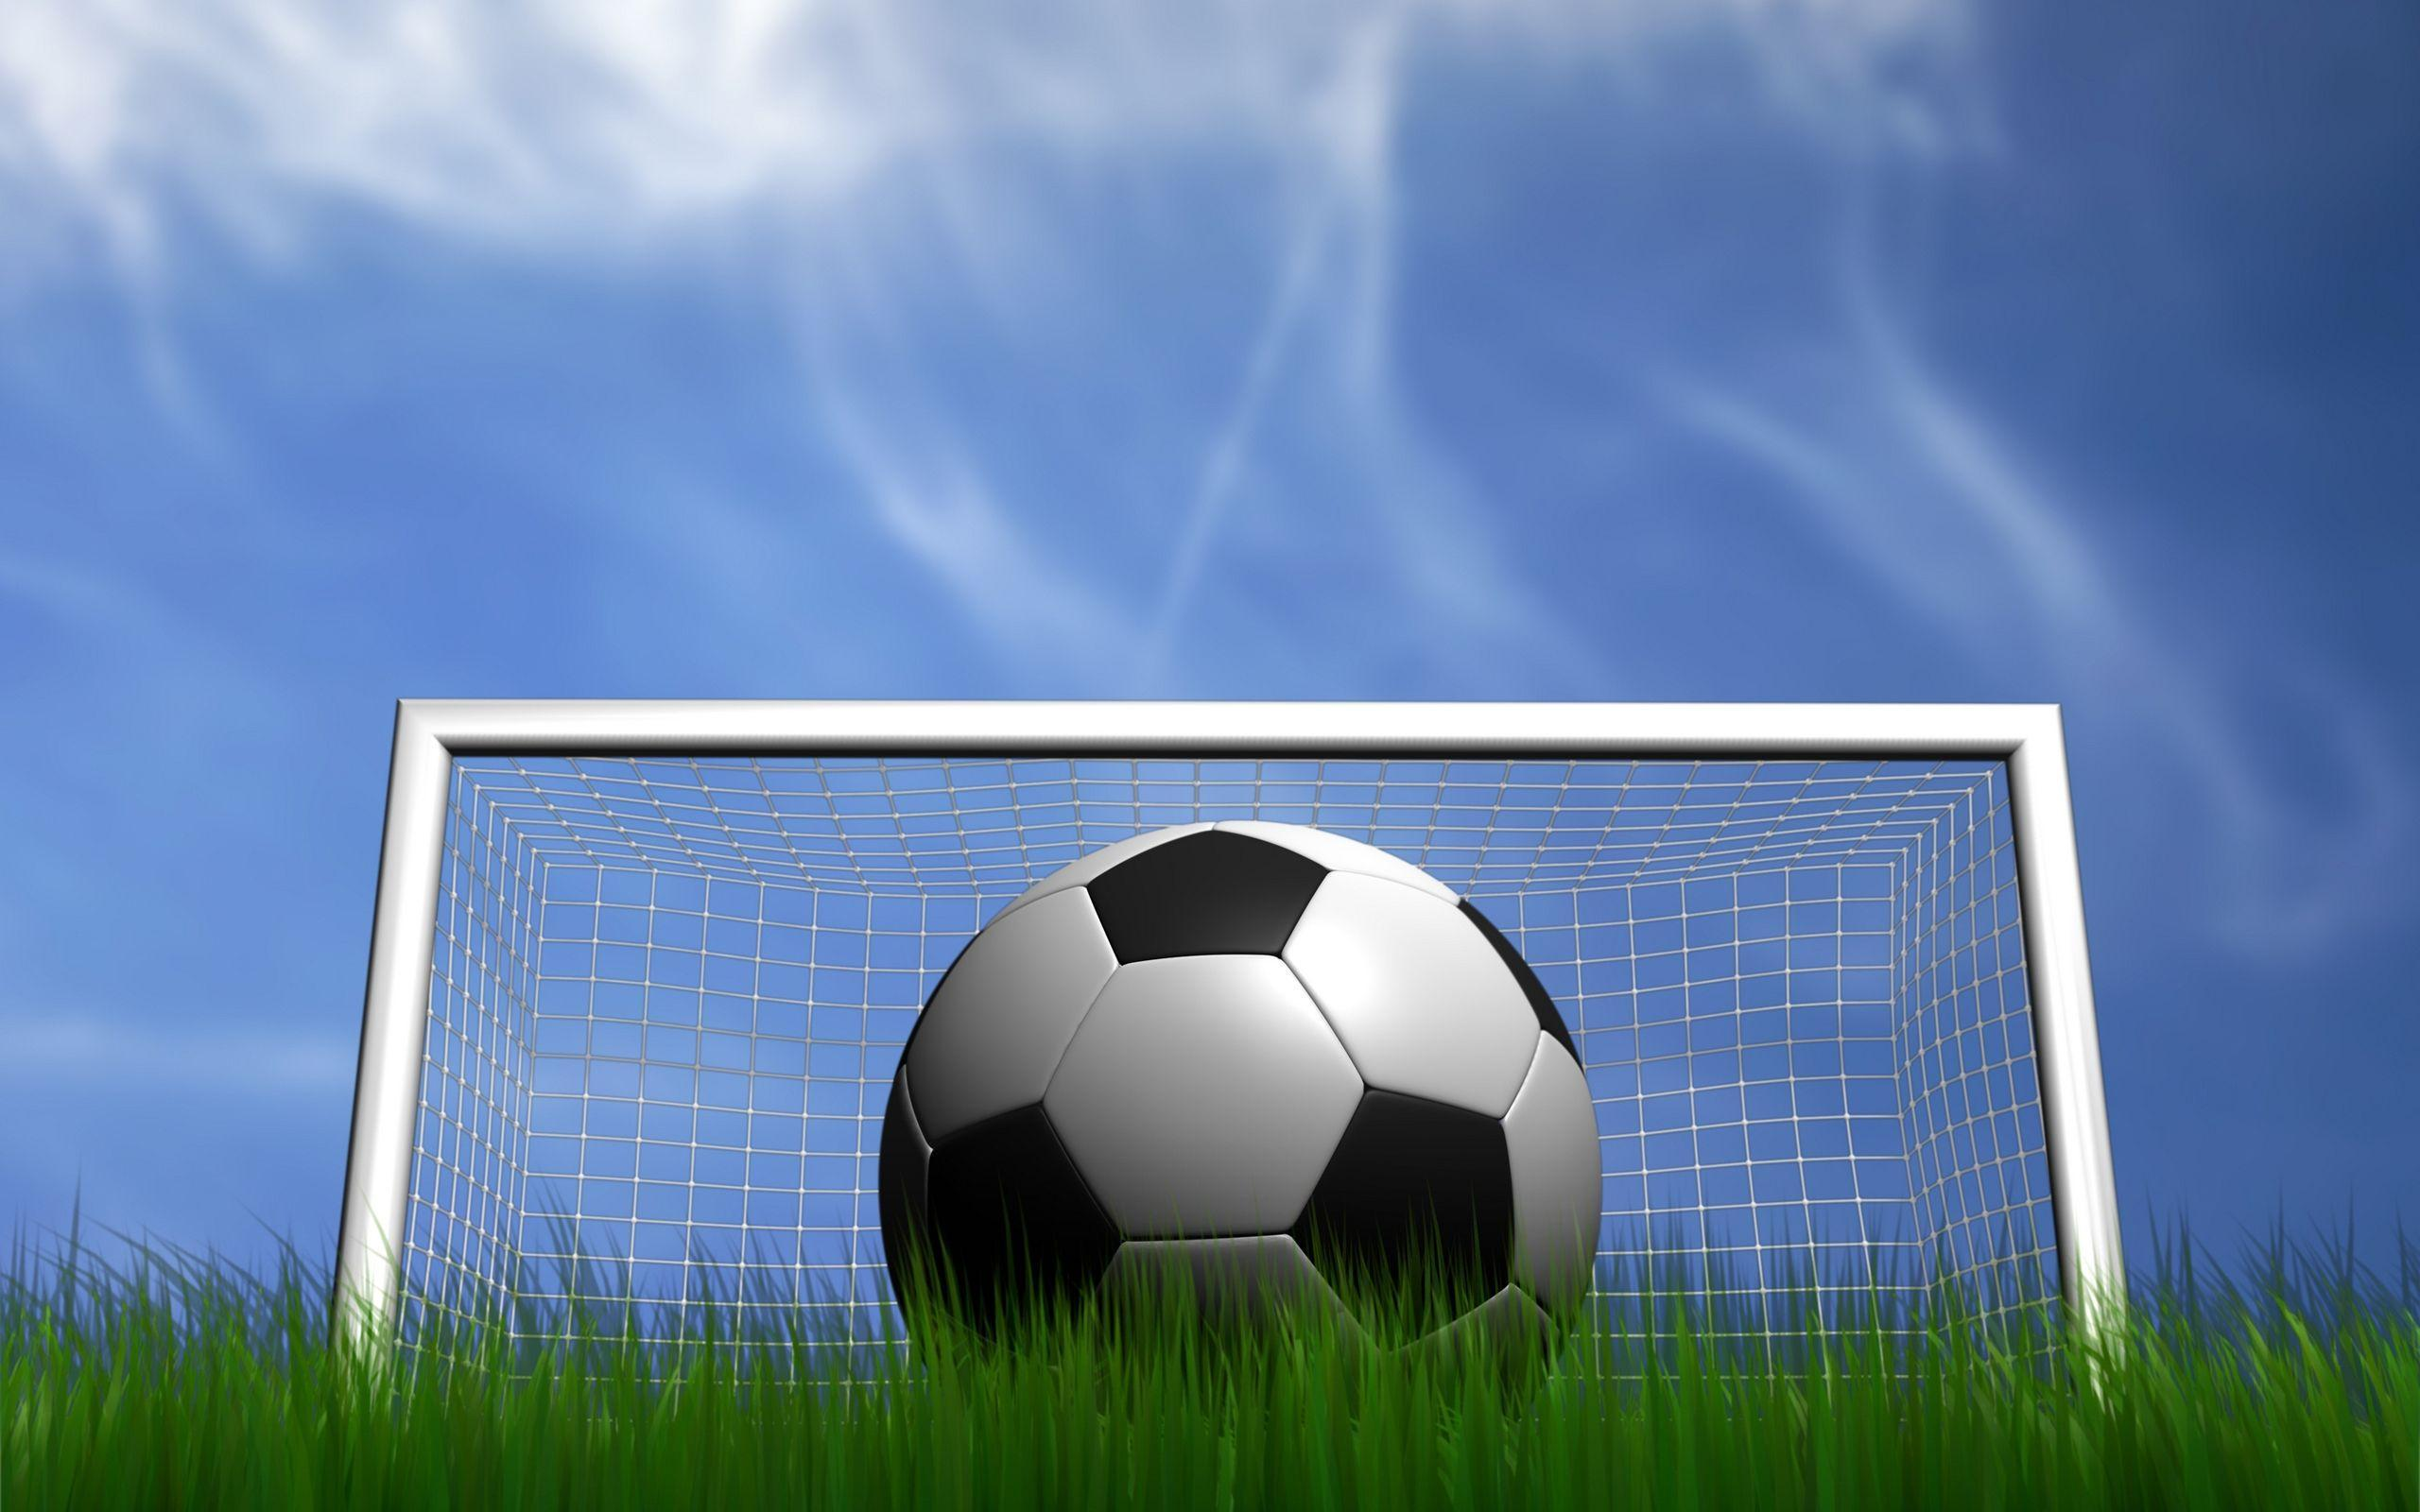 Soccer Ball Wallpaper: Soccer Balls Wallpapers